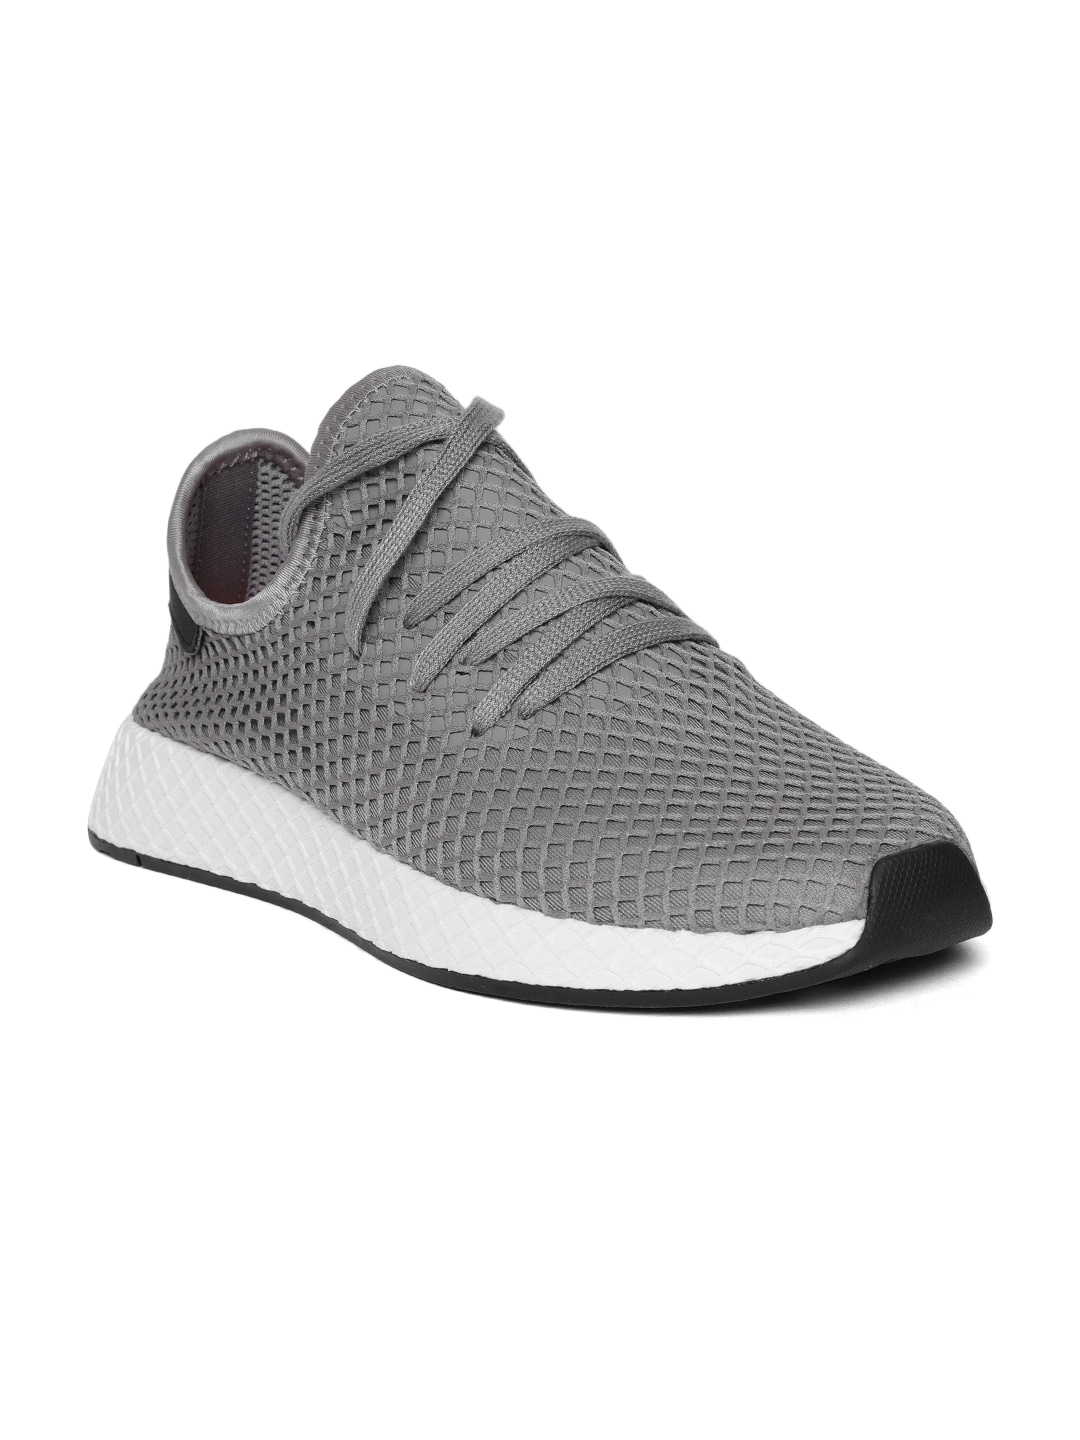 new arrival af46c 2c1cc Adidas Deerupt - Buy Adidas Deerupt online in India